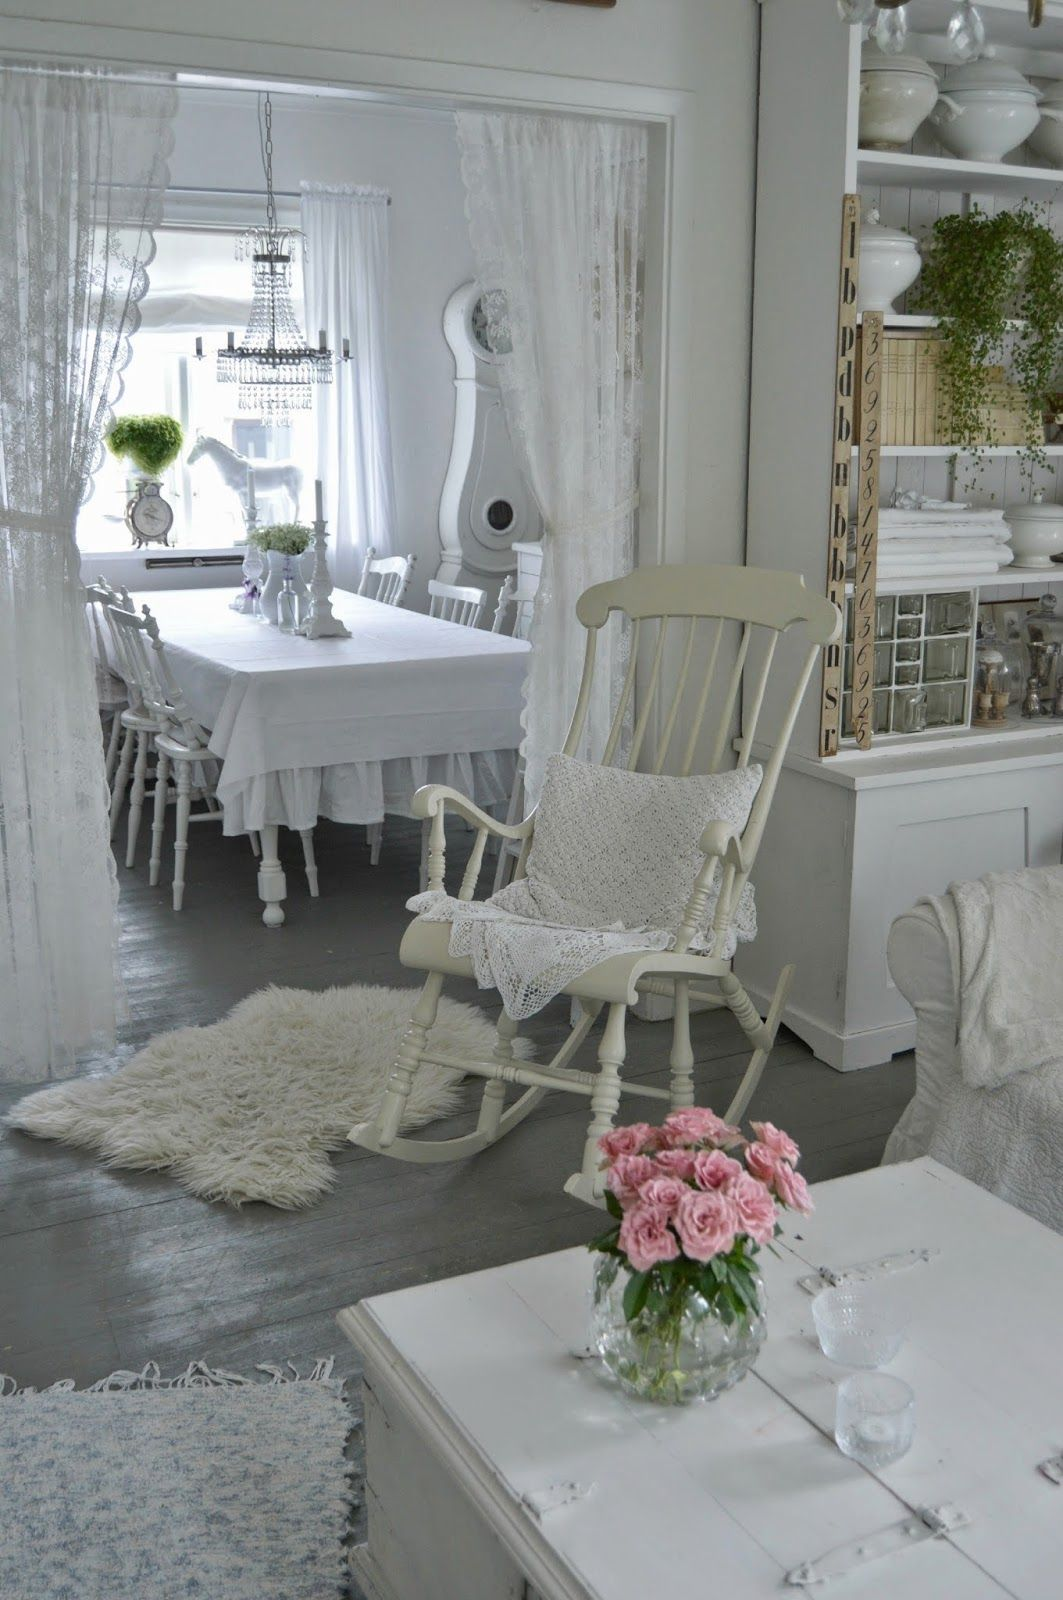 Just Our Stylelove The White Clean Shabby Chic In These Rooms